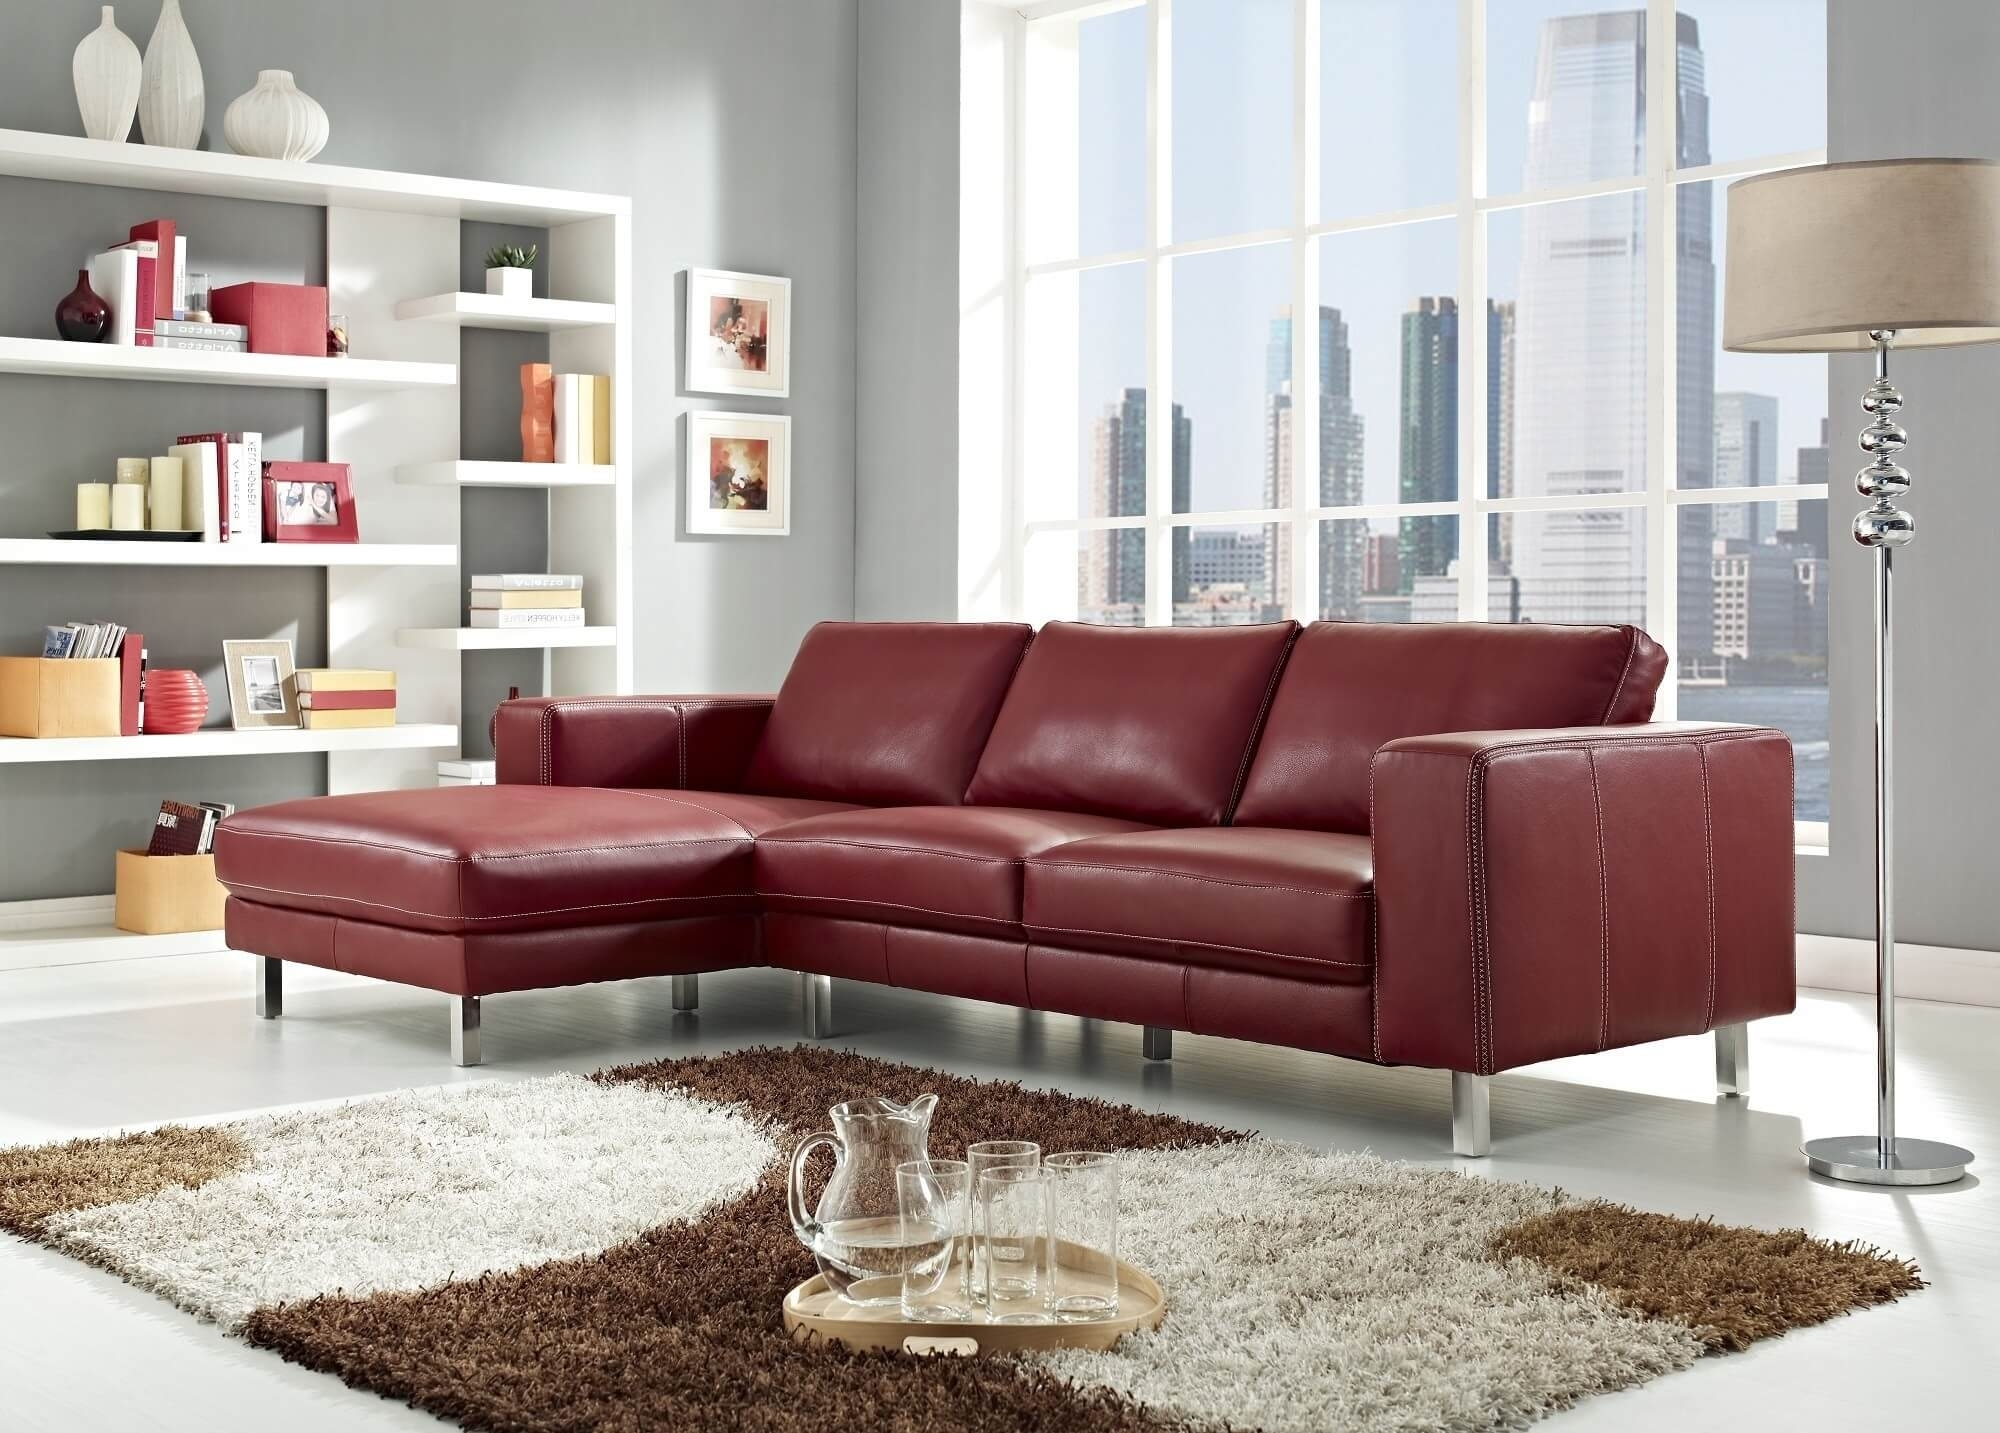 Stylish Modern Red Sectional Sofas With Regard To Red Leather Sectionals With Chaise (View 6 of 10)